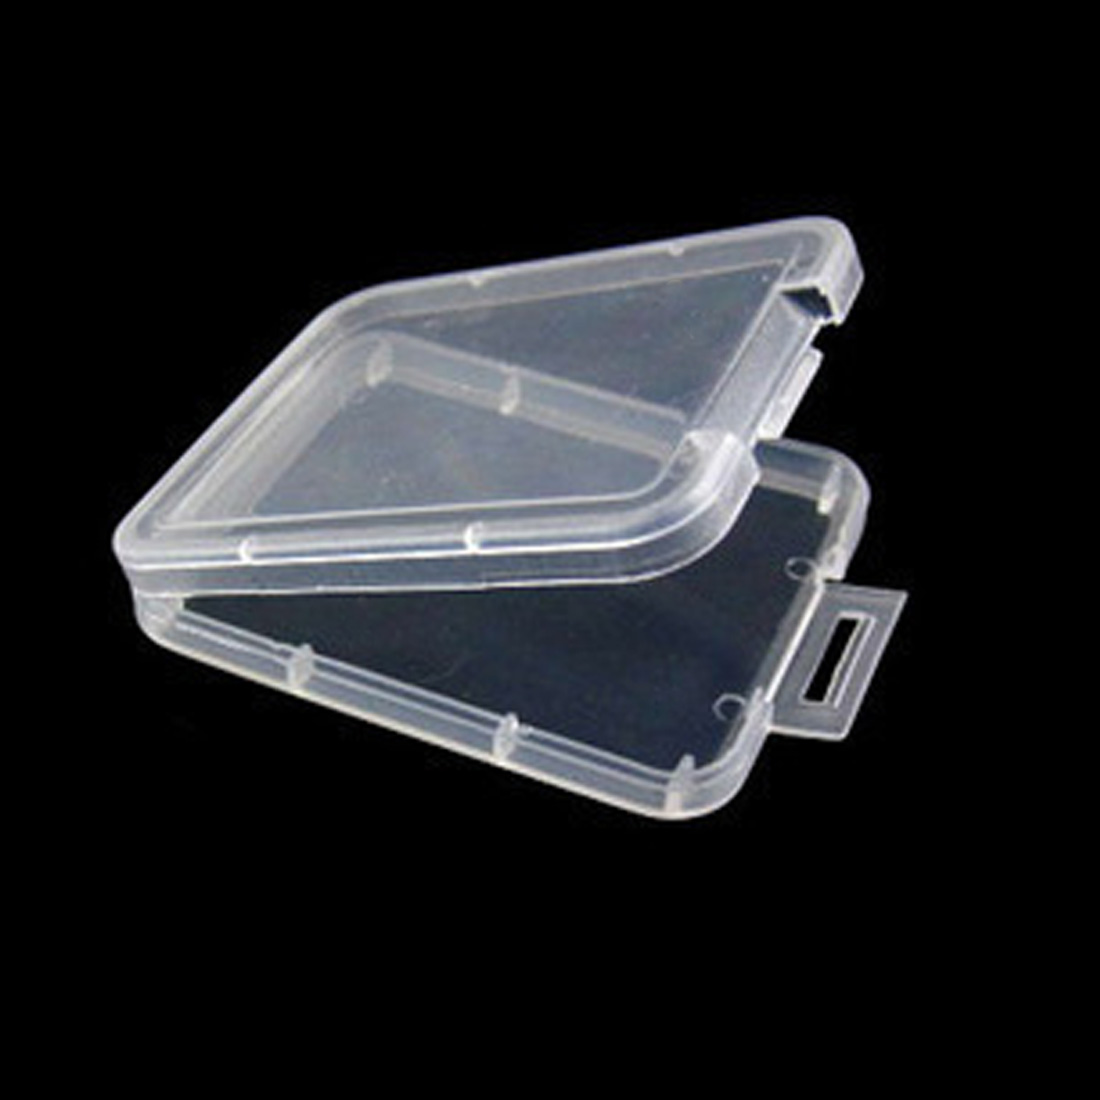 Centechia Transparent 10 Pcs CF Card Box Memory Card Case Compact Flash Card Case Transparent Eco-friendsly Plastic Case